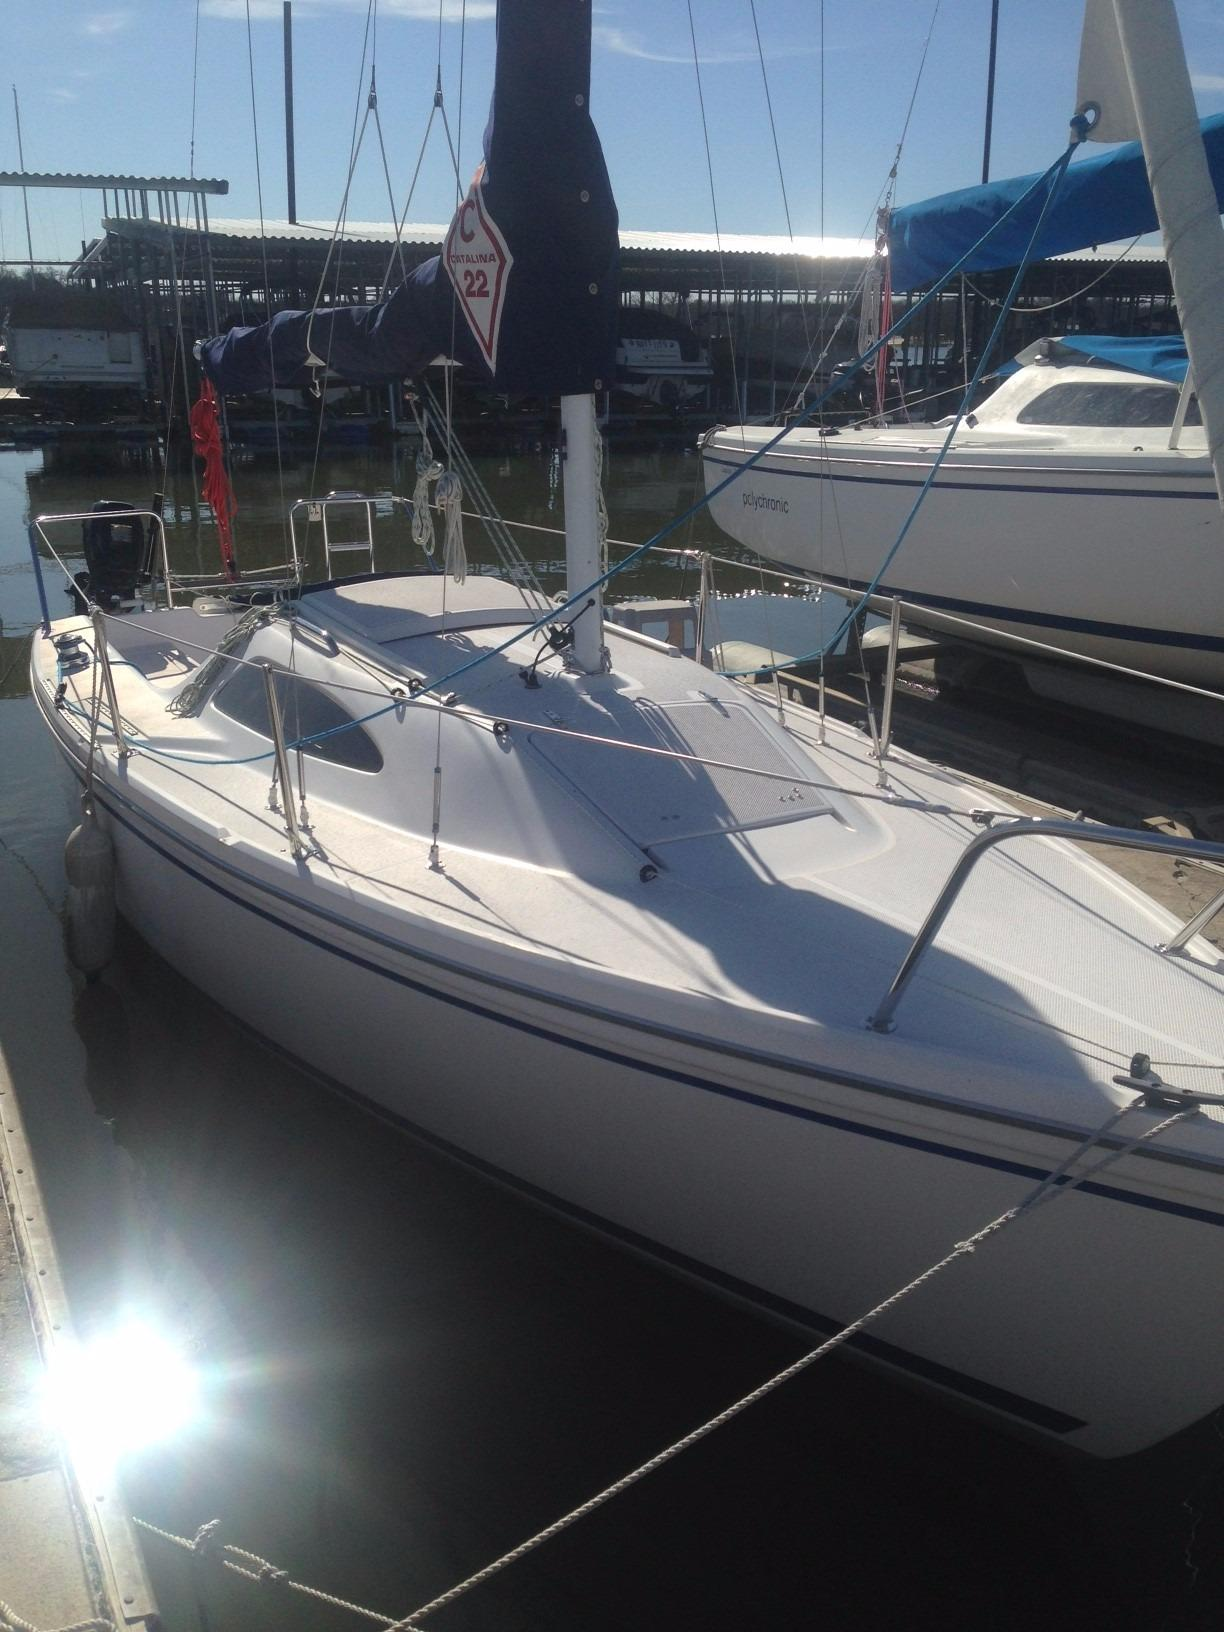 2013 Catalina 22 Sport Sail Boat For Sale Www Yachtworld Com